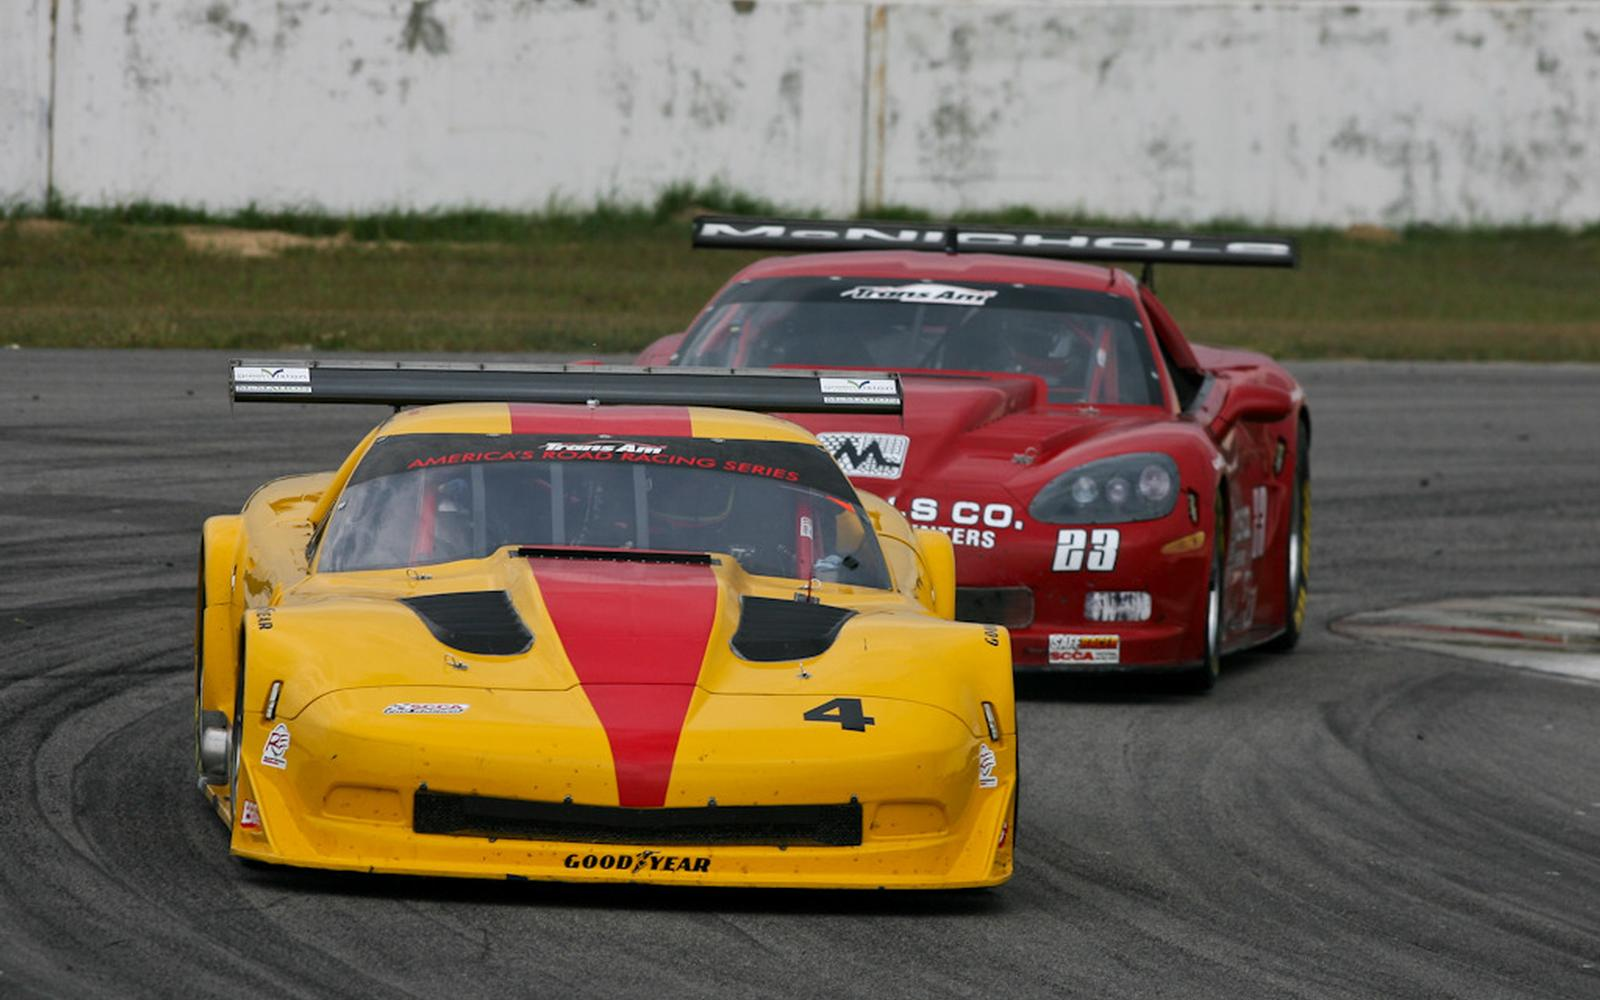 Trans Am double-header culminates in victories for Ave and Ruman